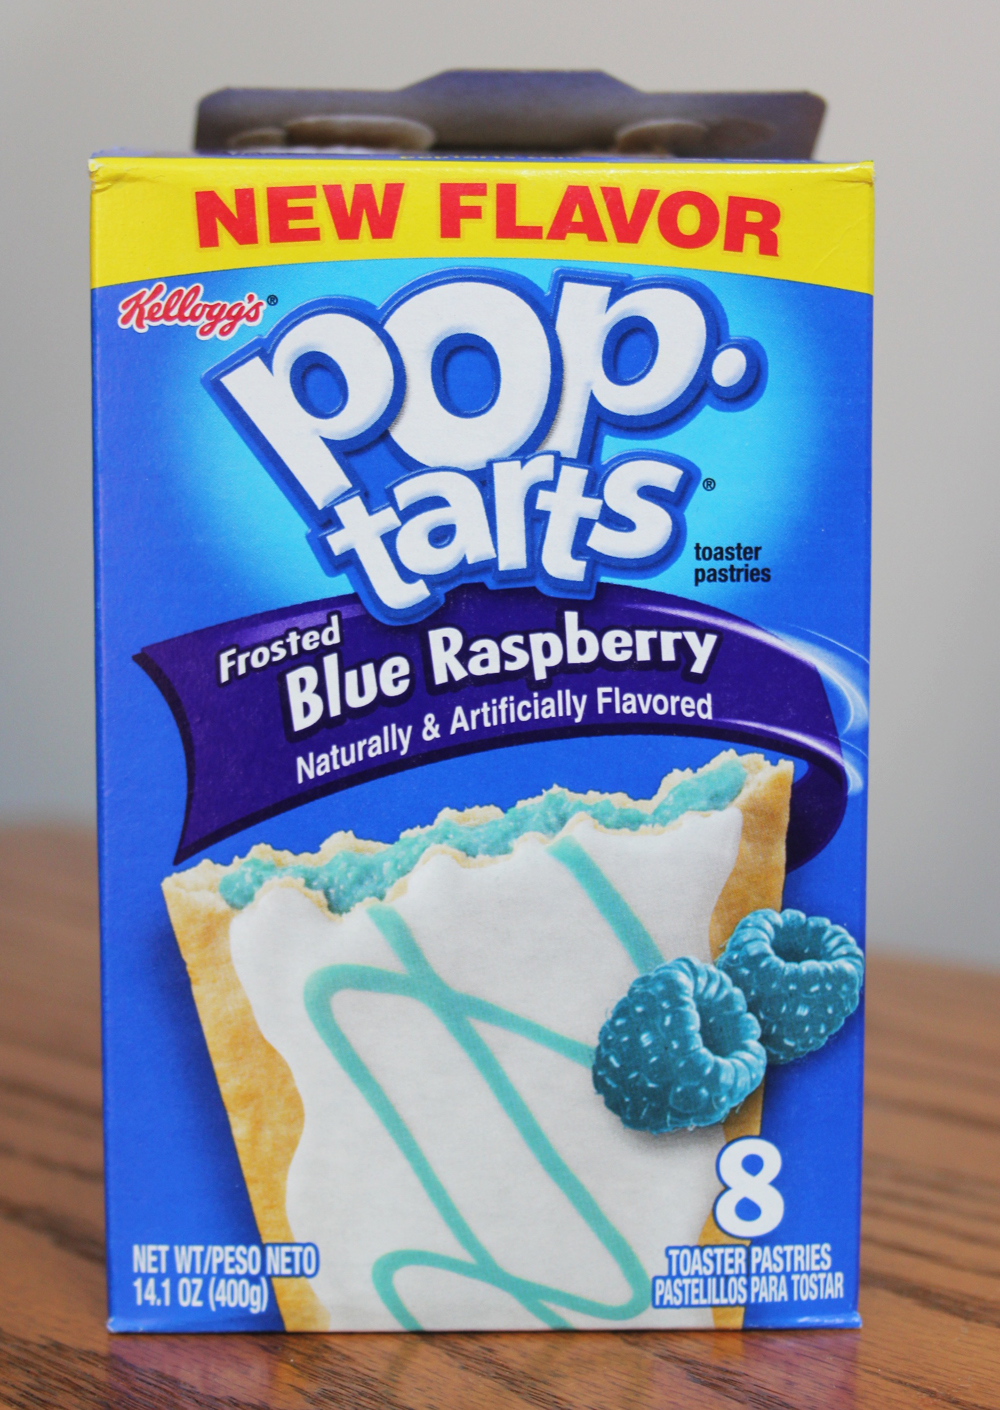 Review: Frosted Blue Raspberry Pop-Tarts